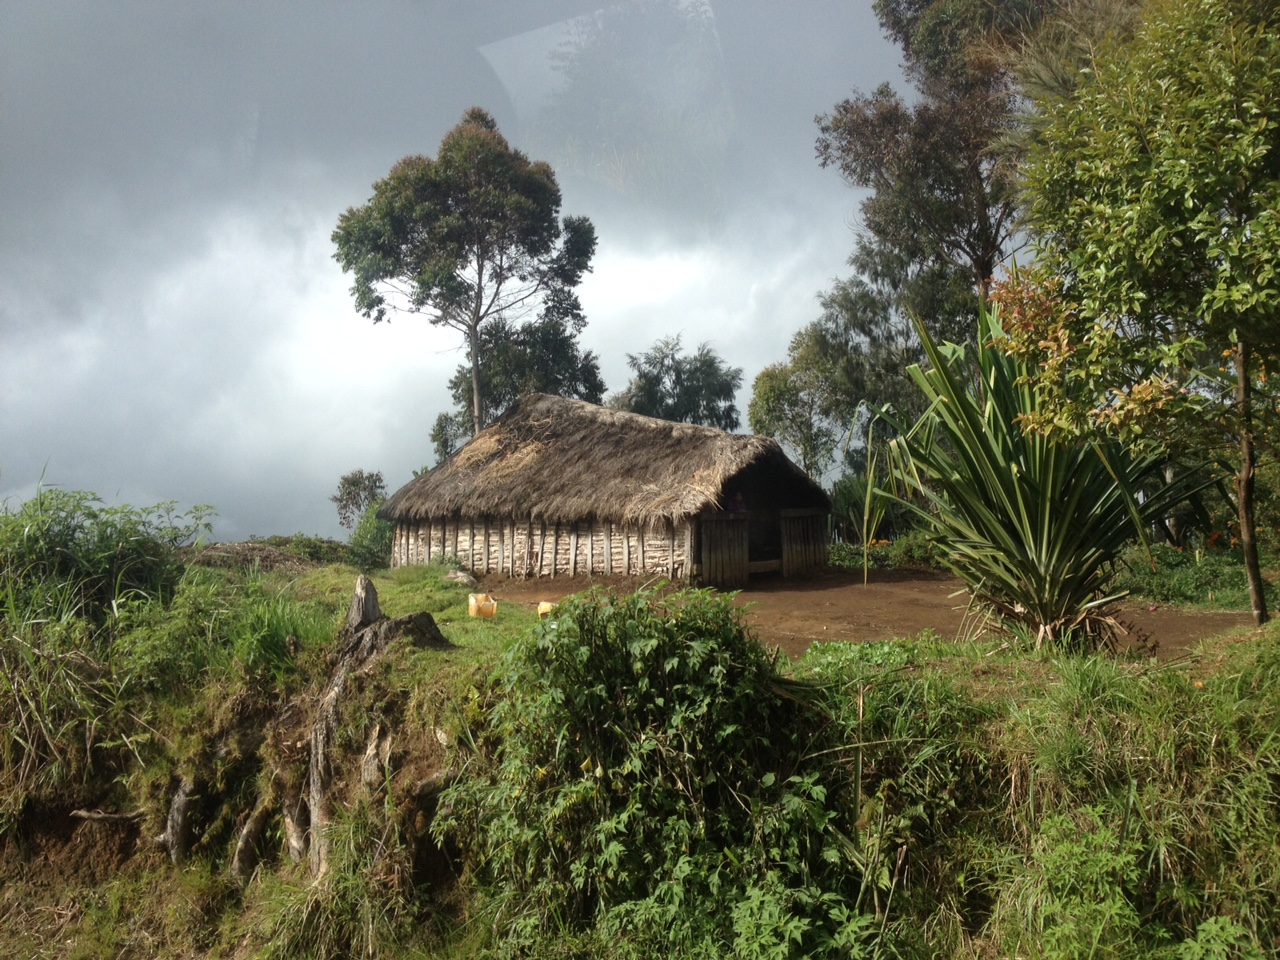 This is a great example of an Enga style house. I haven't seen this shape anywhere else in Papua New Guinea, but they are quite common here.